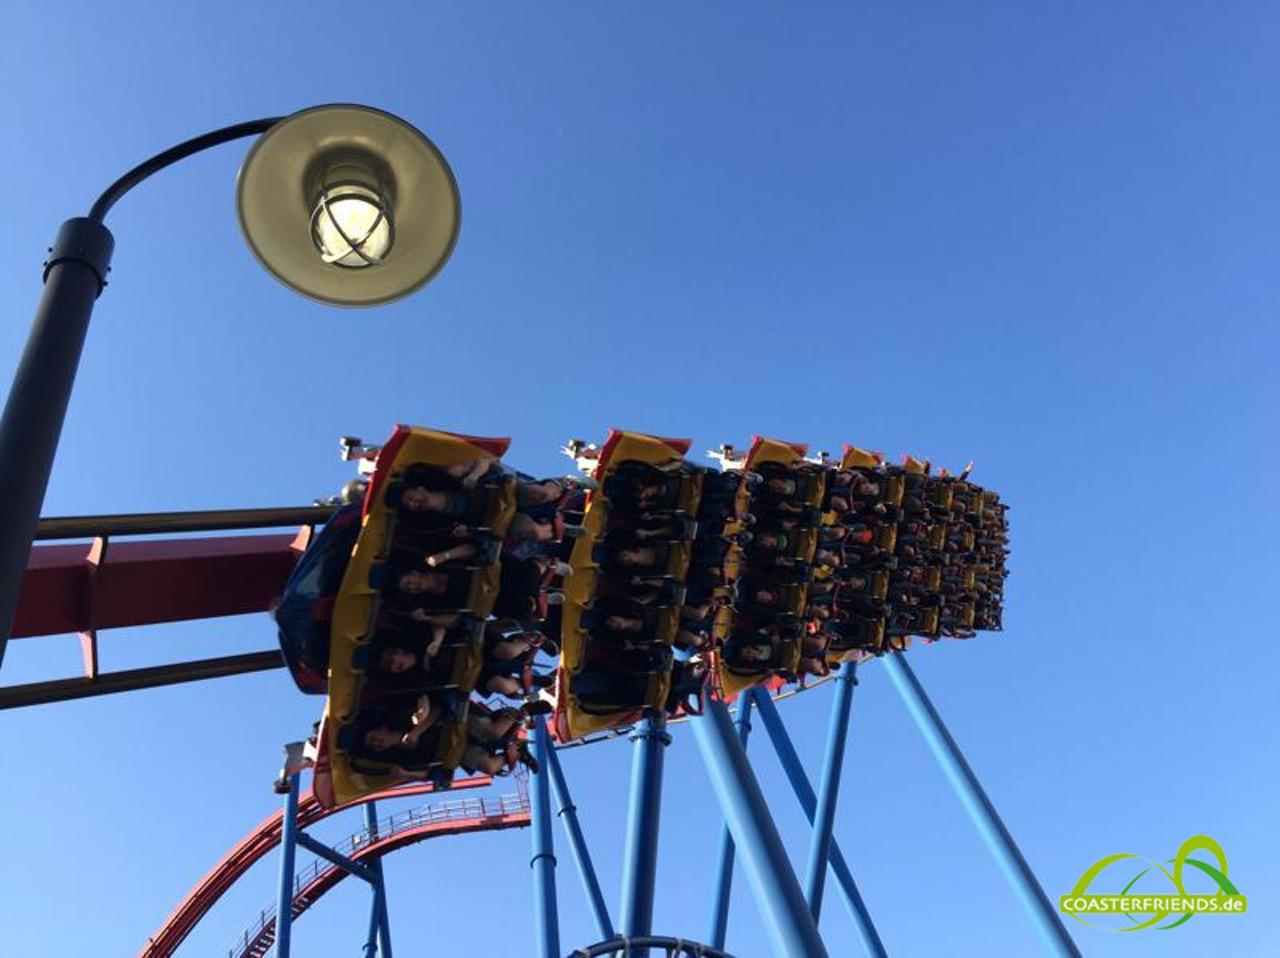 Nordamerika - https://coasterfriends.de/joomla//images/pcp_parkdetails/nordamerika/o2604_six_flags_great_america/content1.jpg